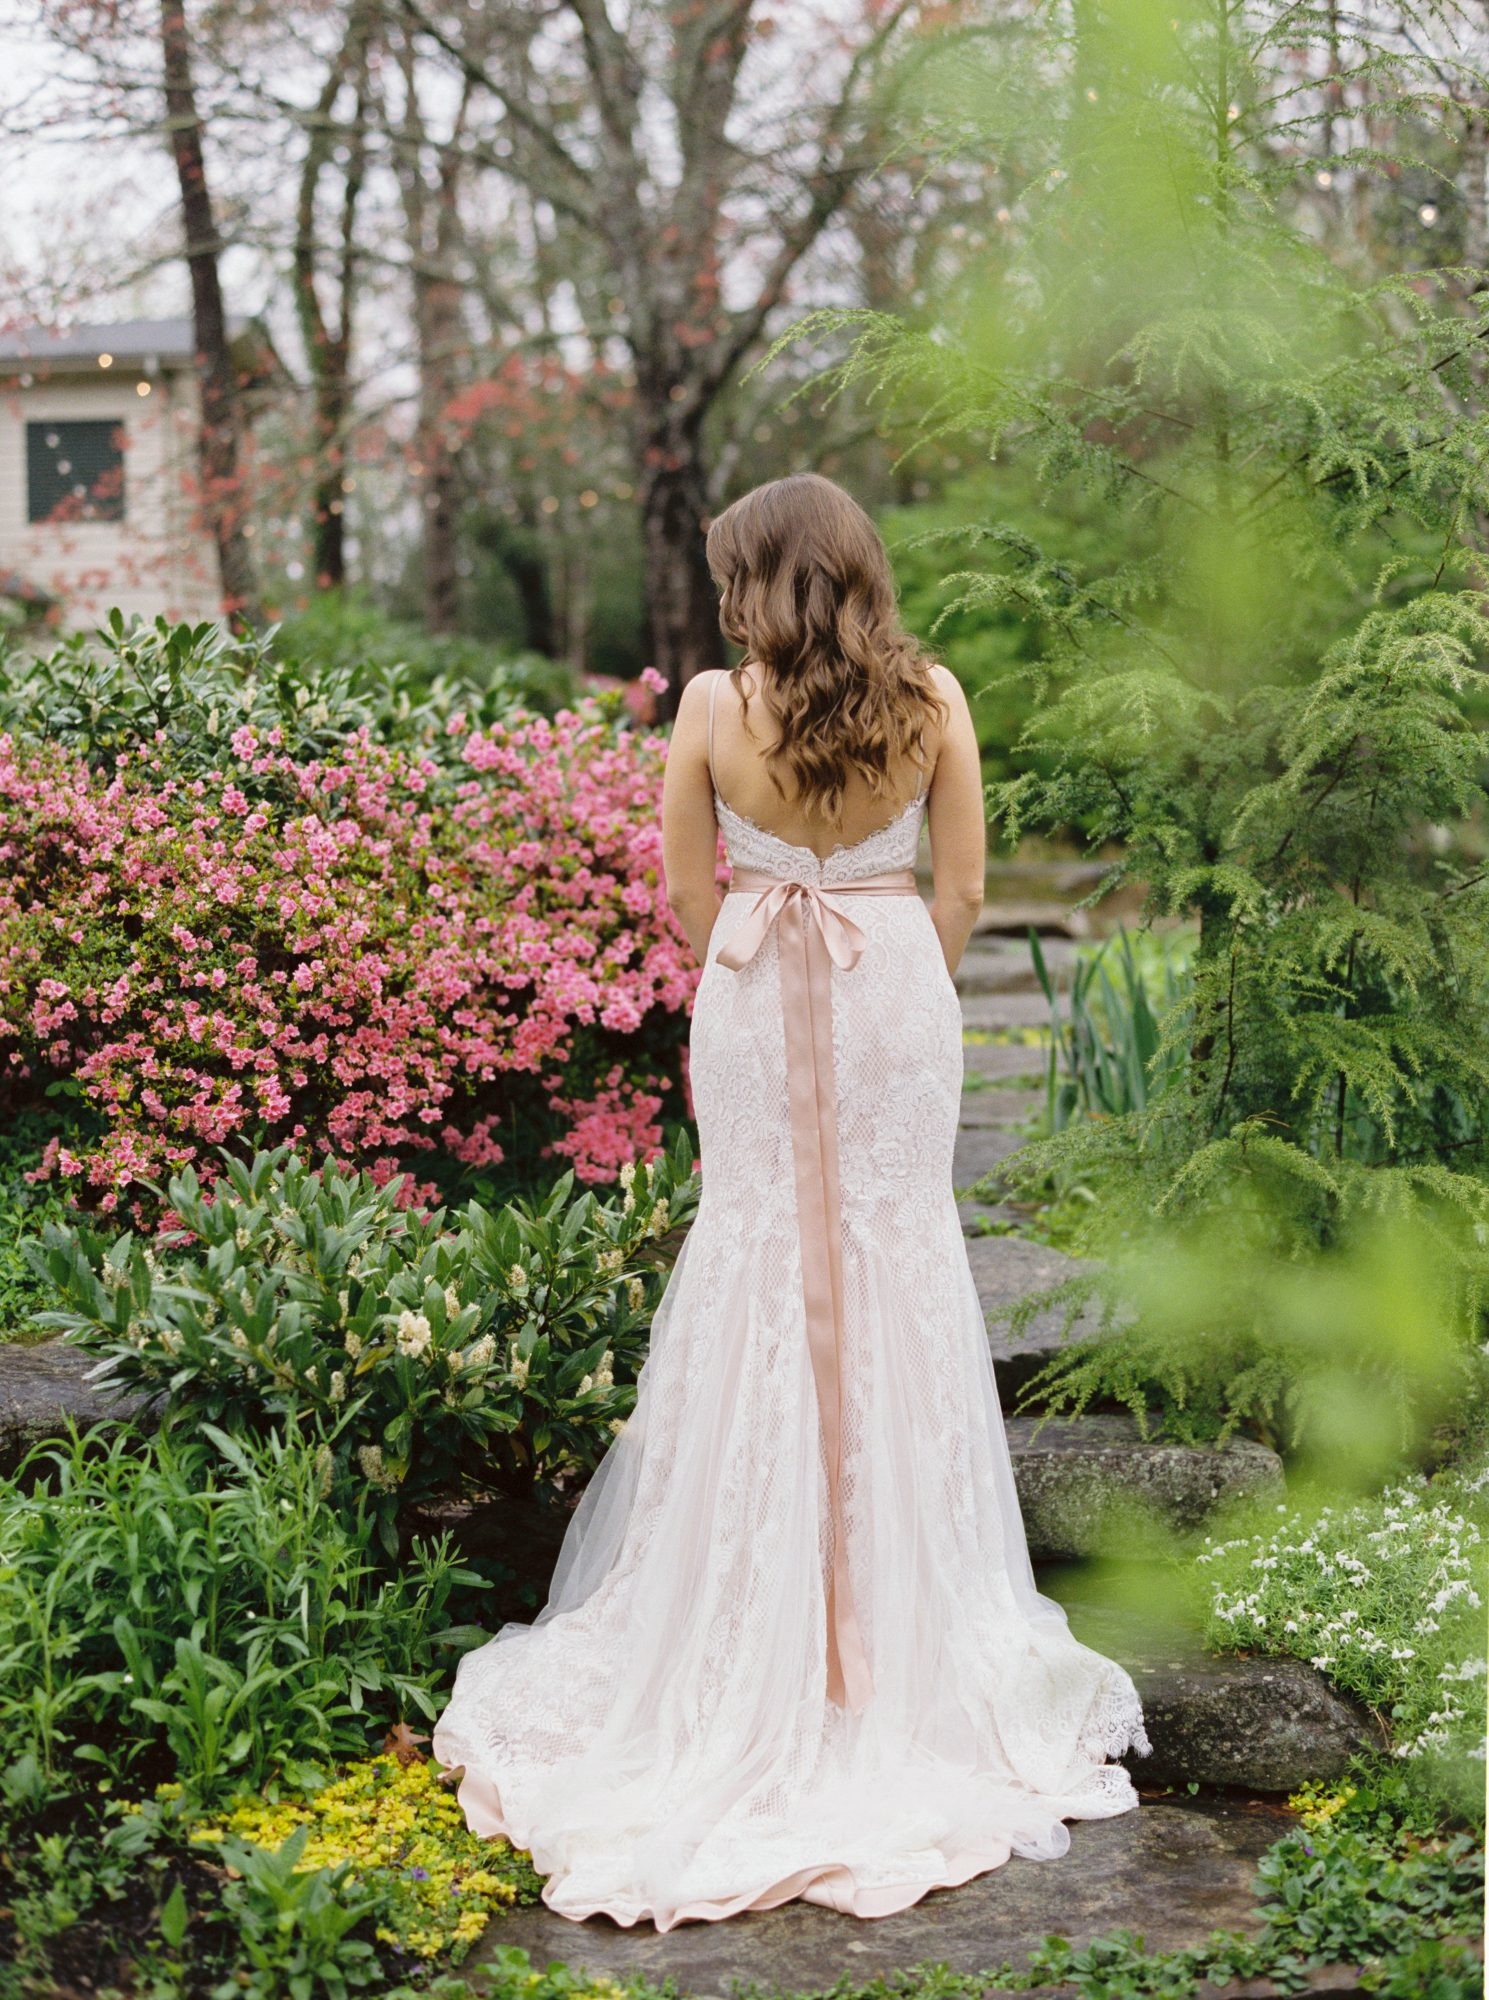 Bridal Gown with Blush Undertones